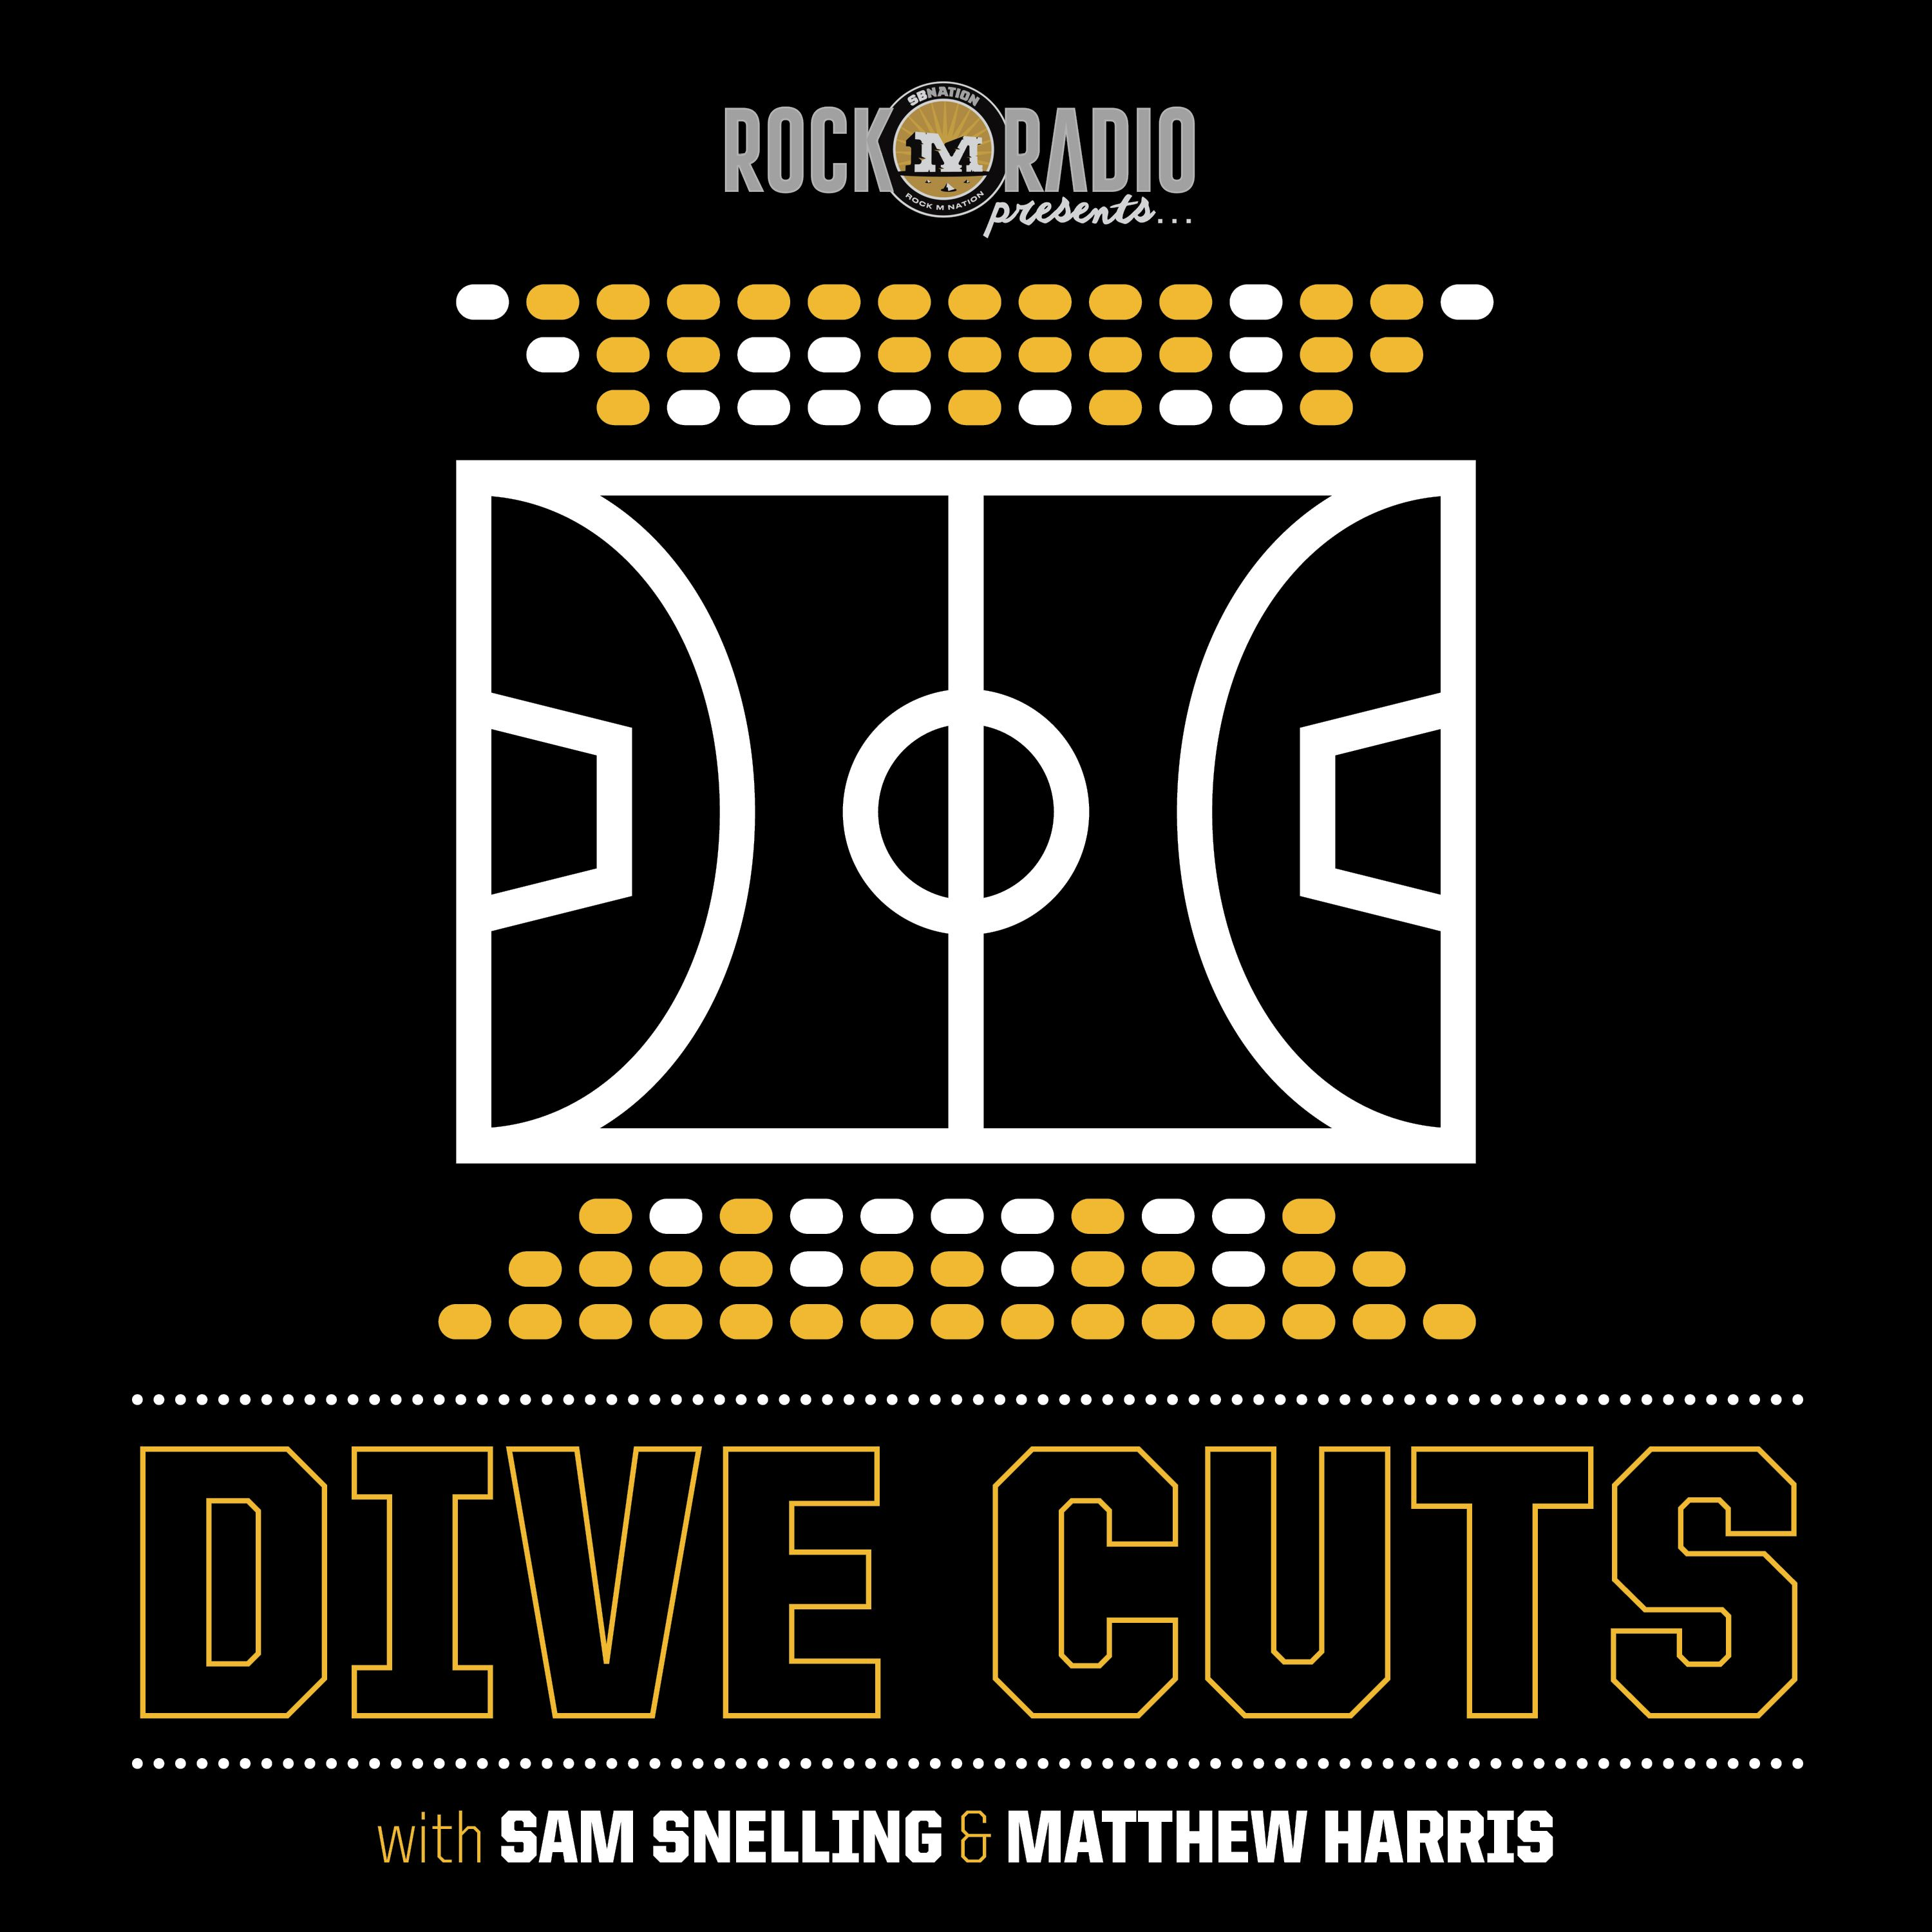 Dive Cuts with Sam Snelling and Matthew Harris Season 3 Episode 23 with CJ Moore